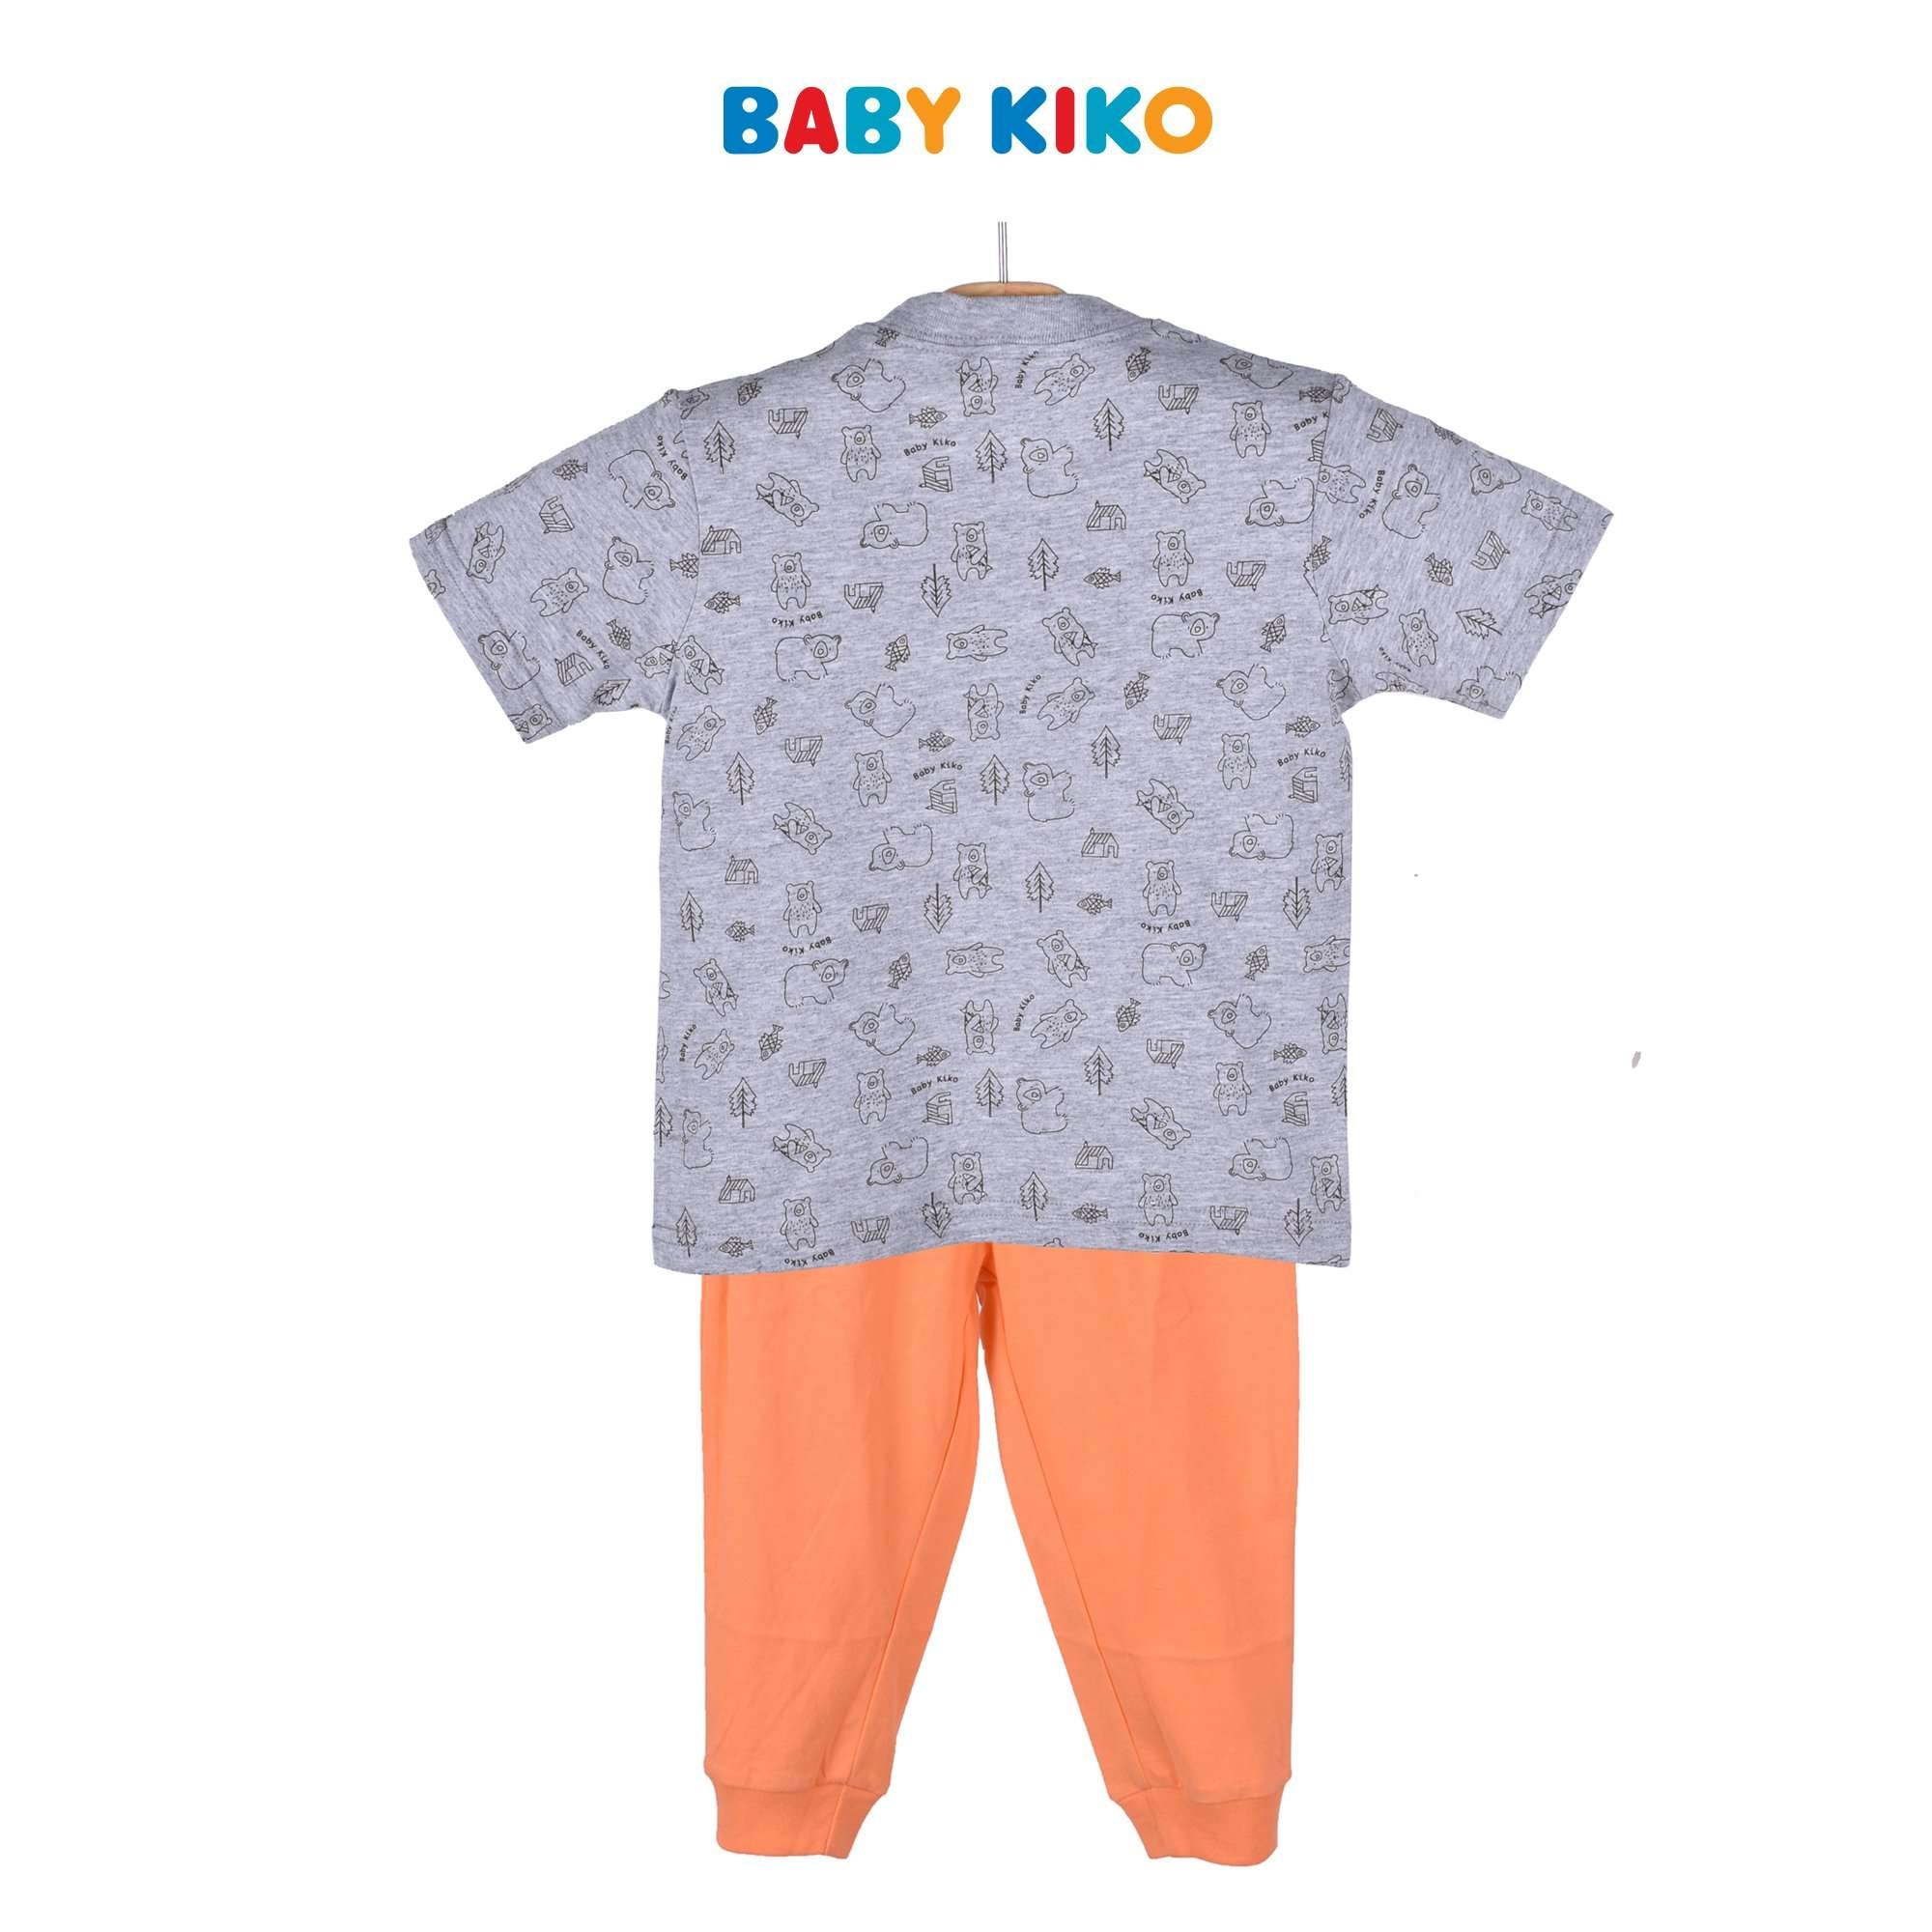 Baby KIKO Toddler Boy Pyjamas Short Sleeve Long Pants Suit 325150-421 : Buy Baby KIKO online at CMG.MY